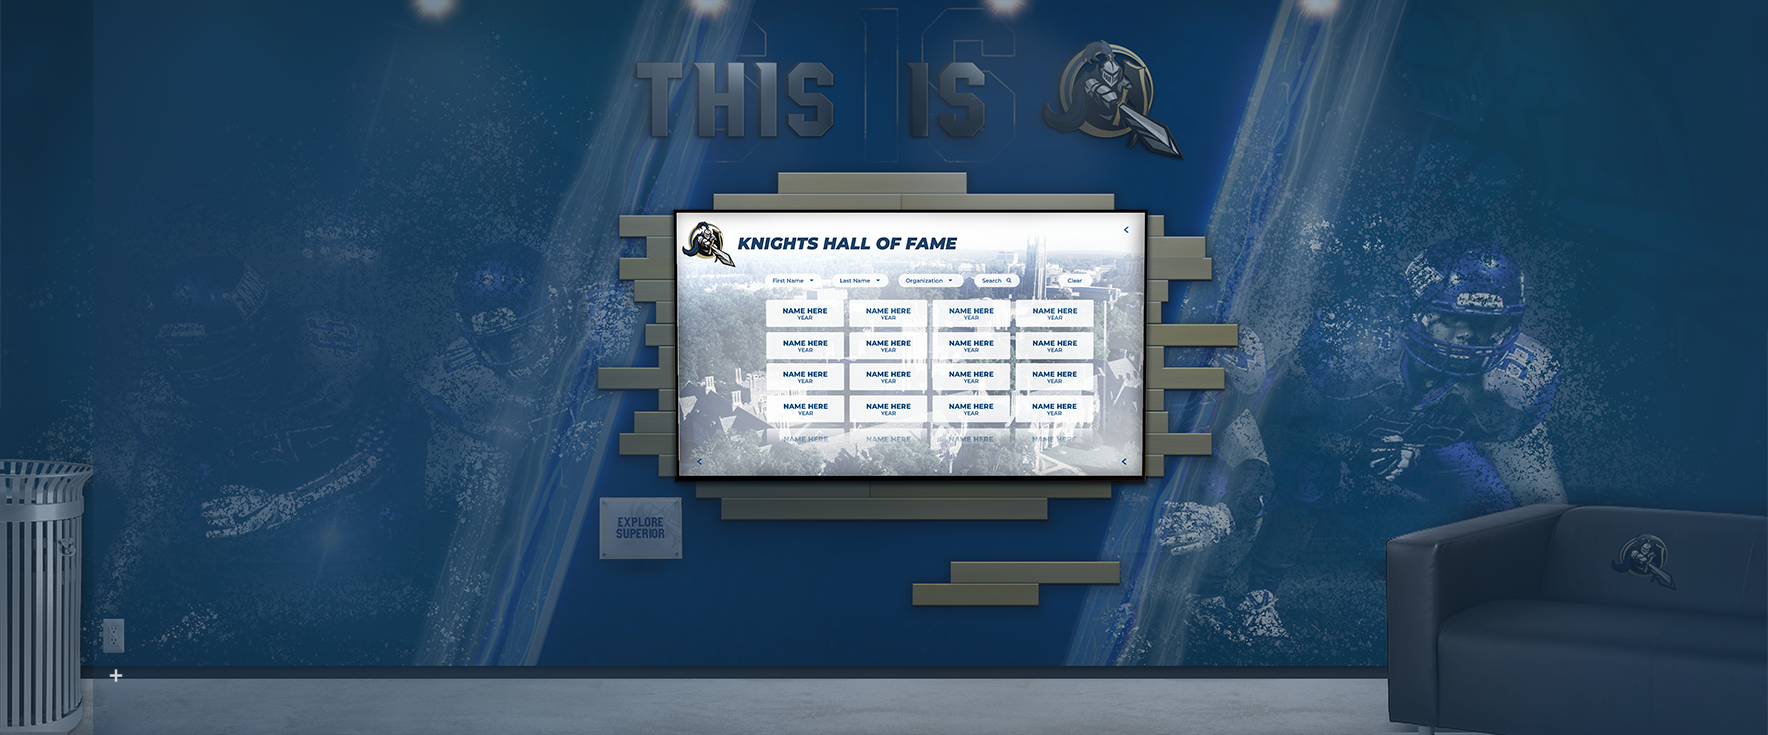 Digital Wall of Fame Touch Screen Hall of Fame